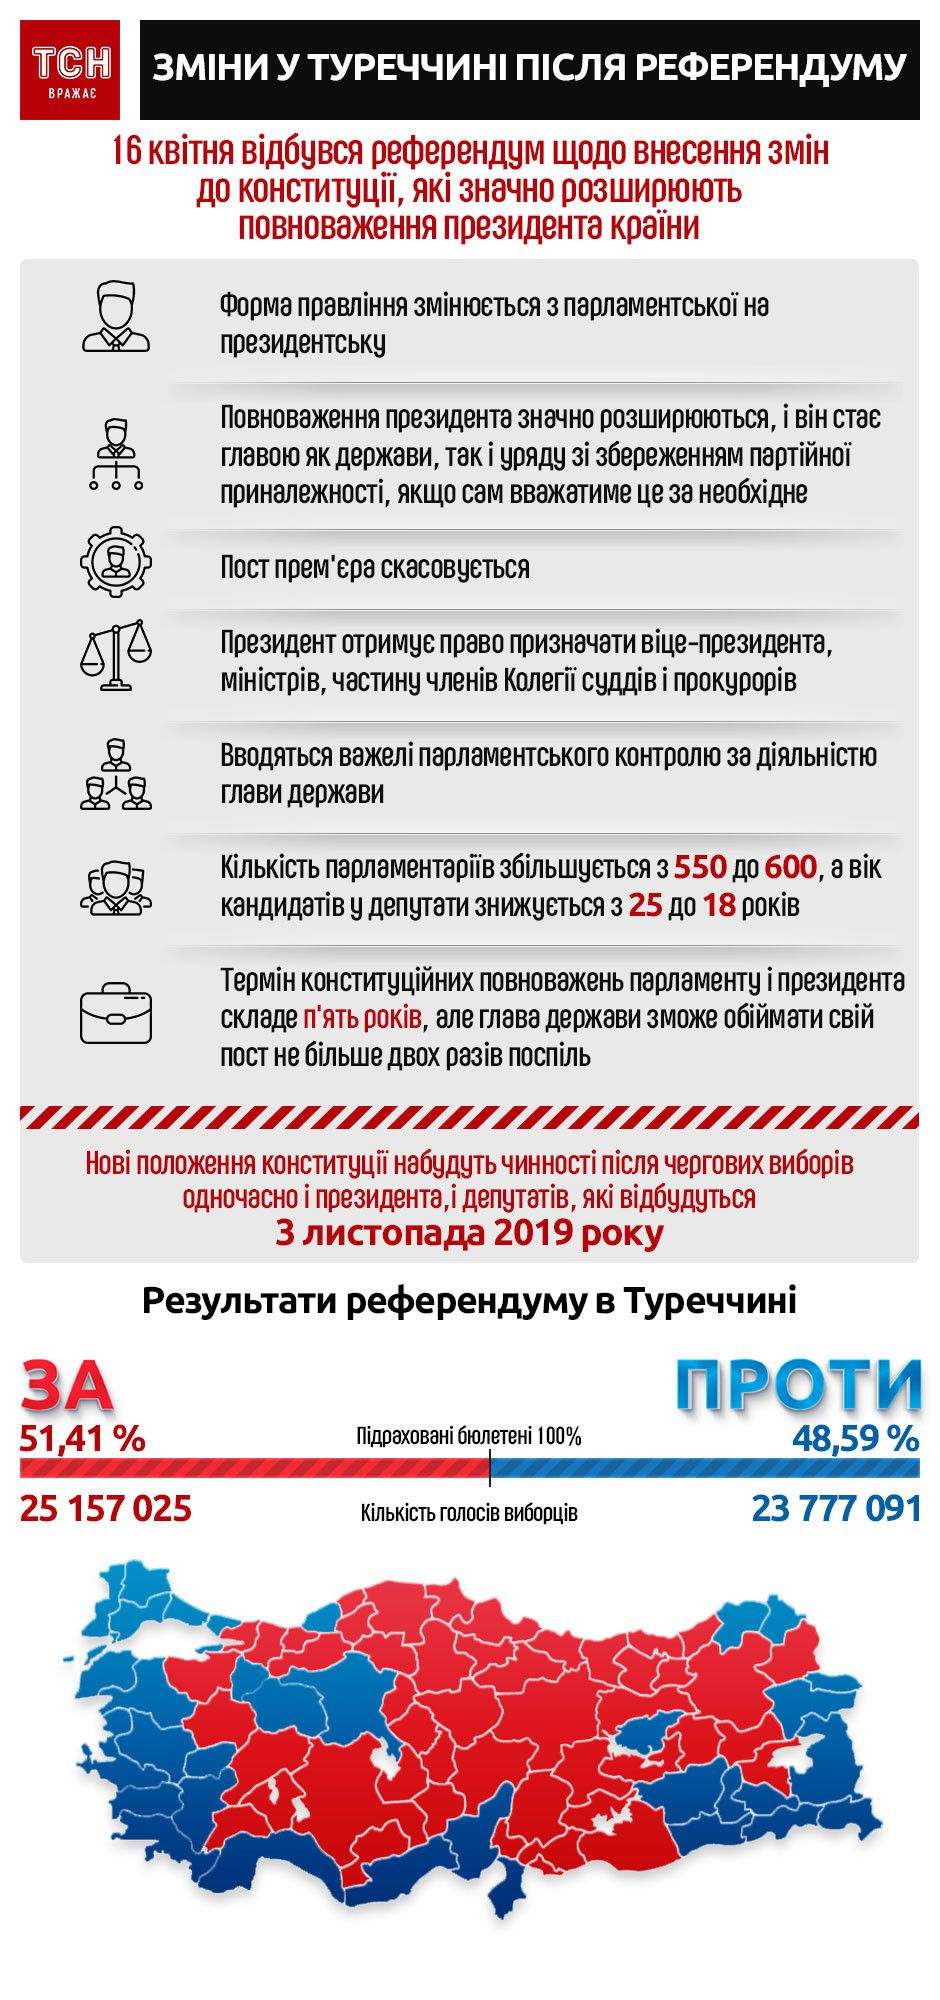 Референдум у Туреччині. Інфографіка